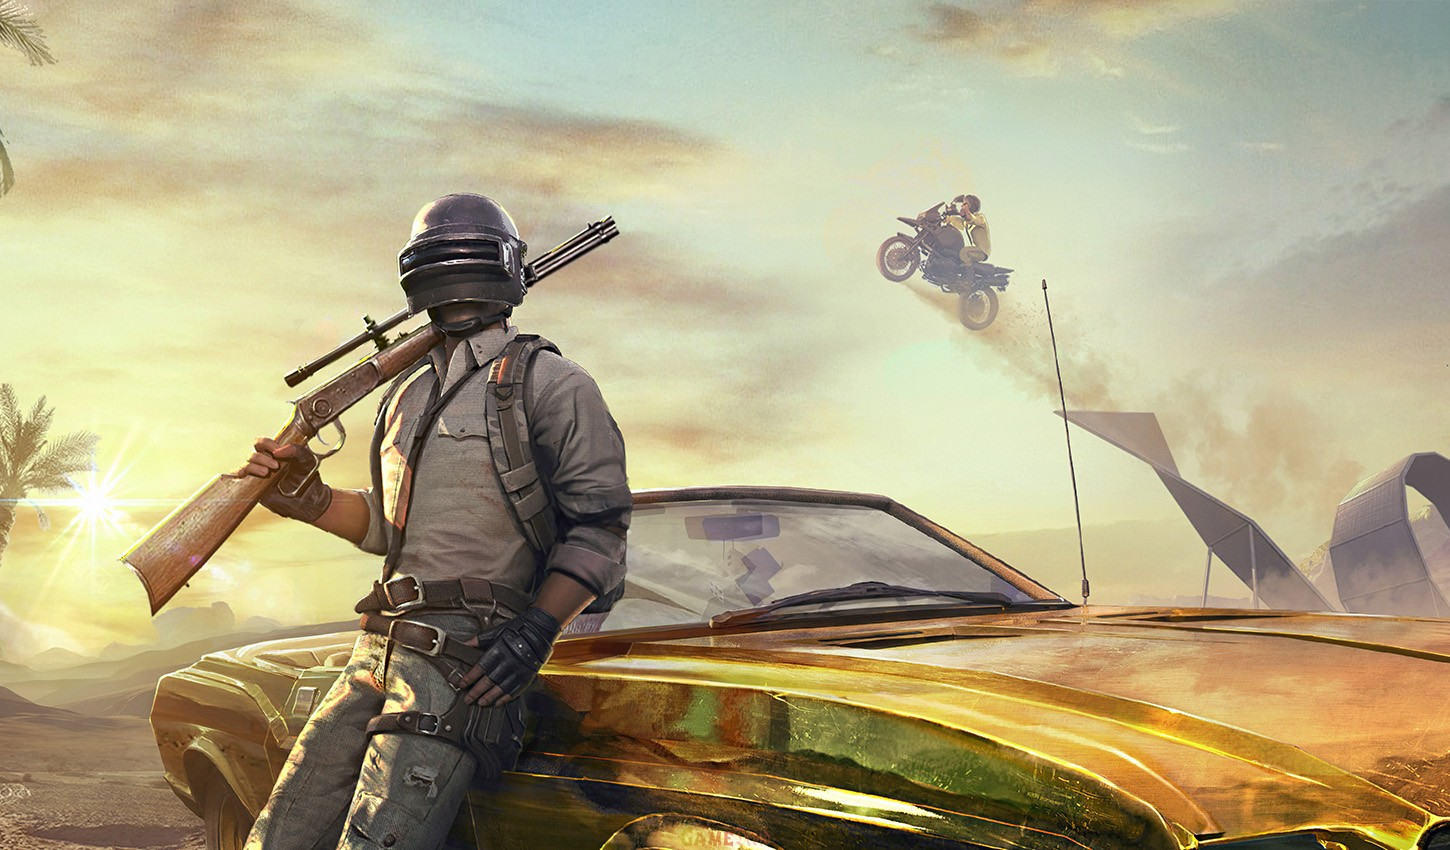 Download PUBG MOBILE PlayStation 4 Free Game Premium Edition